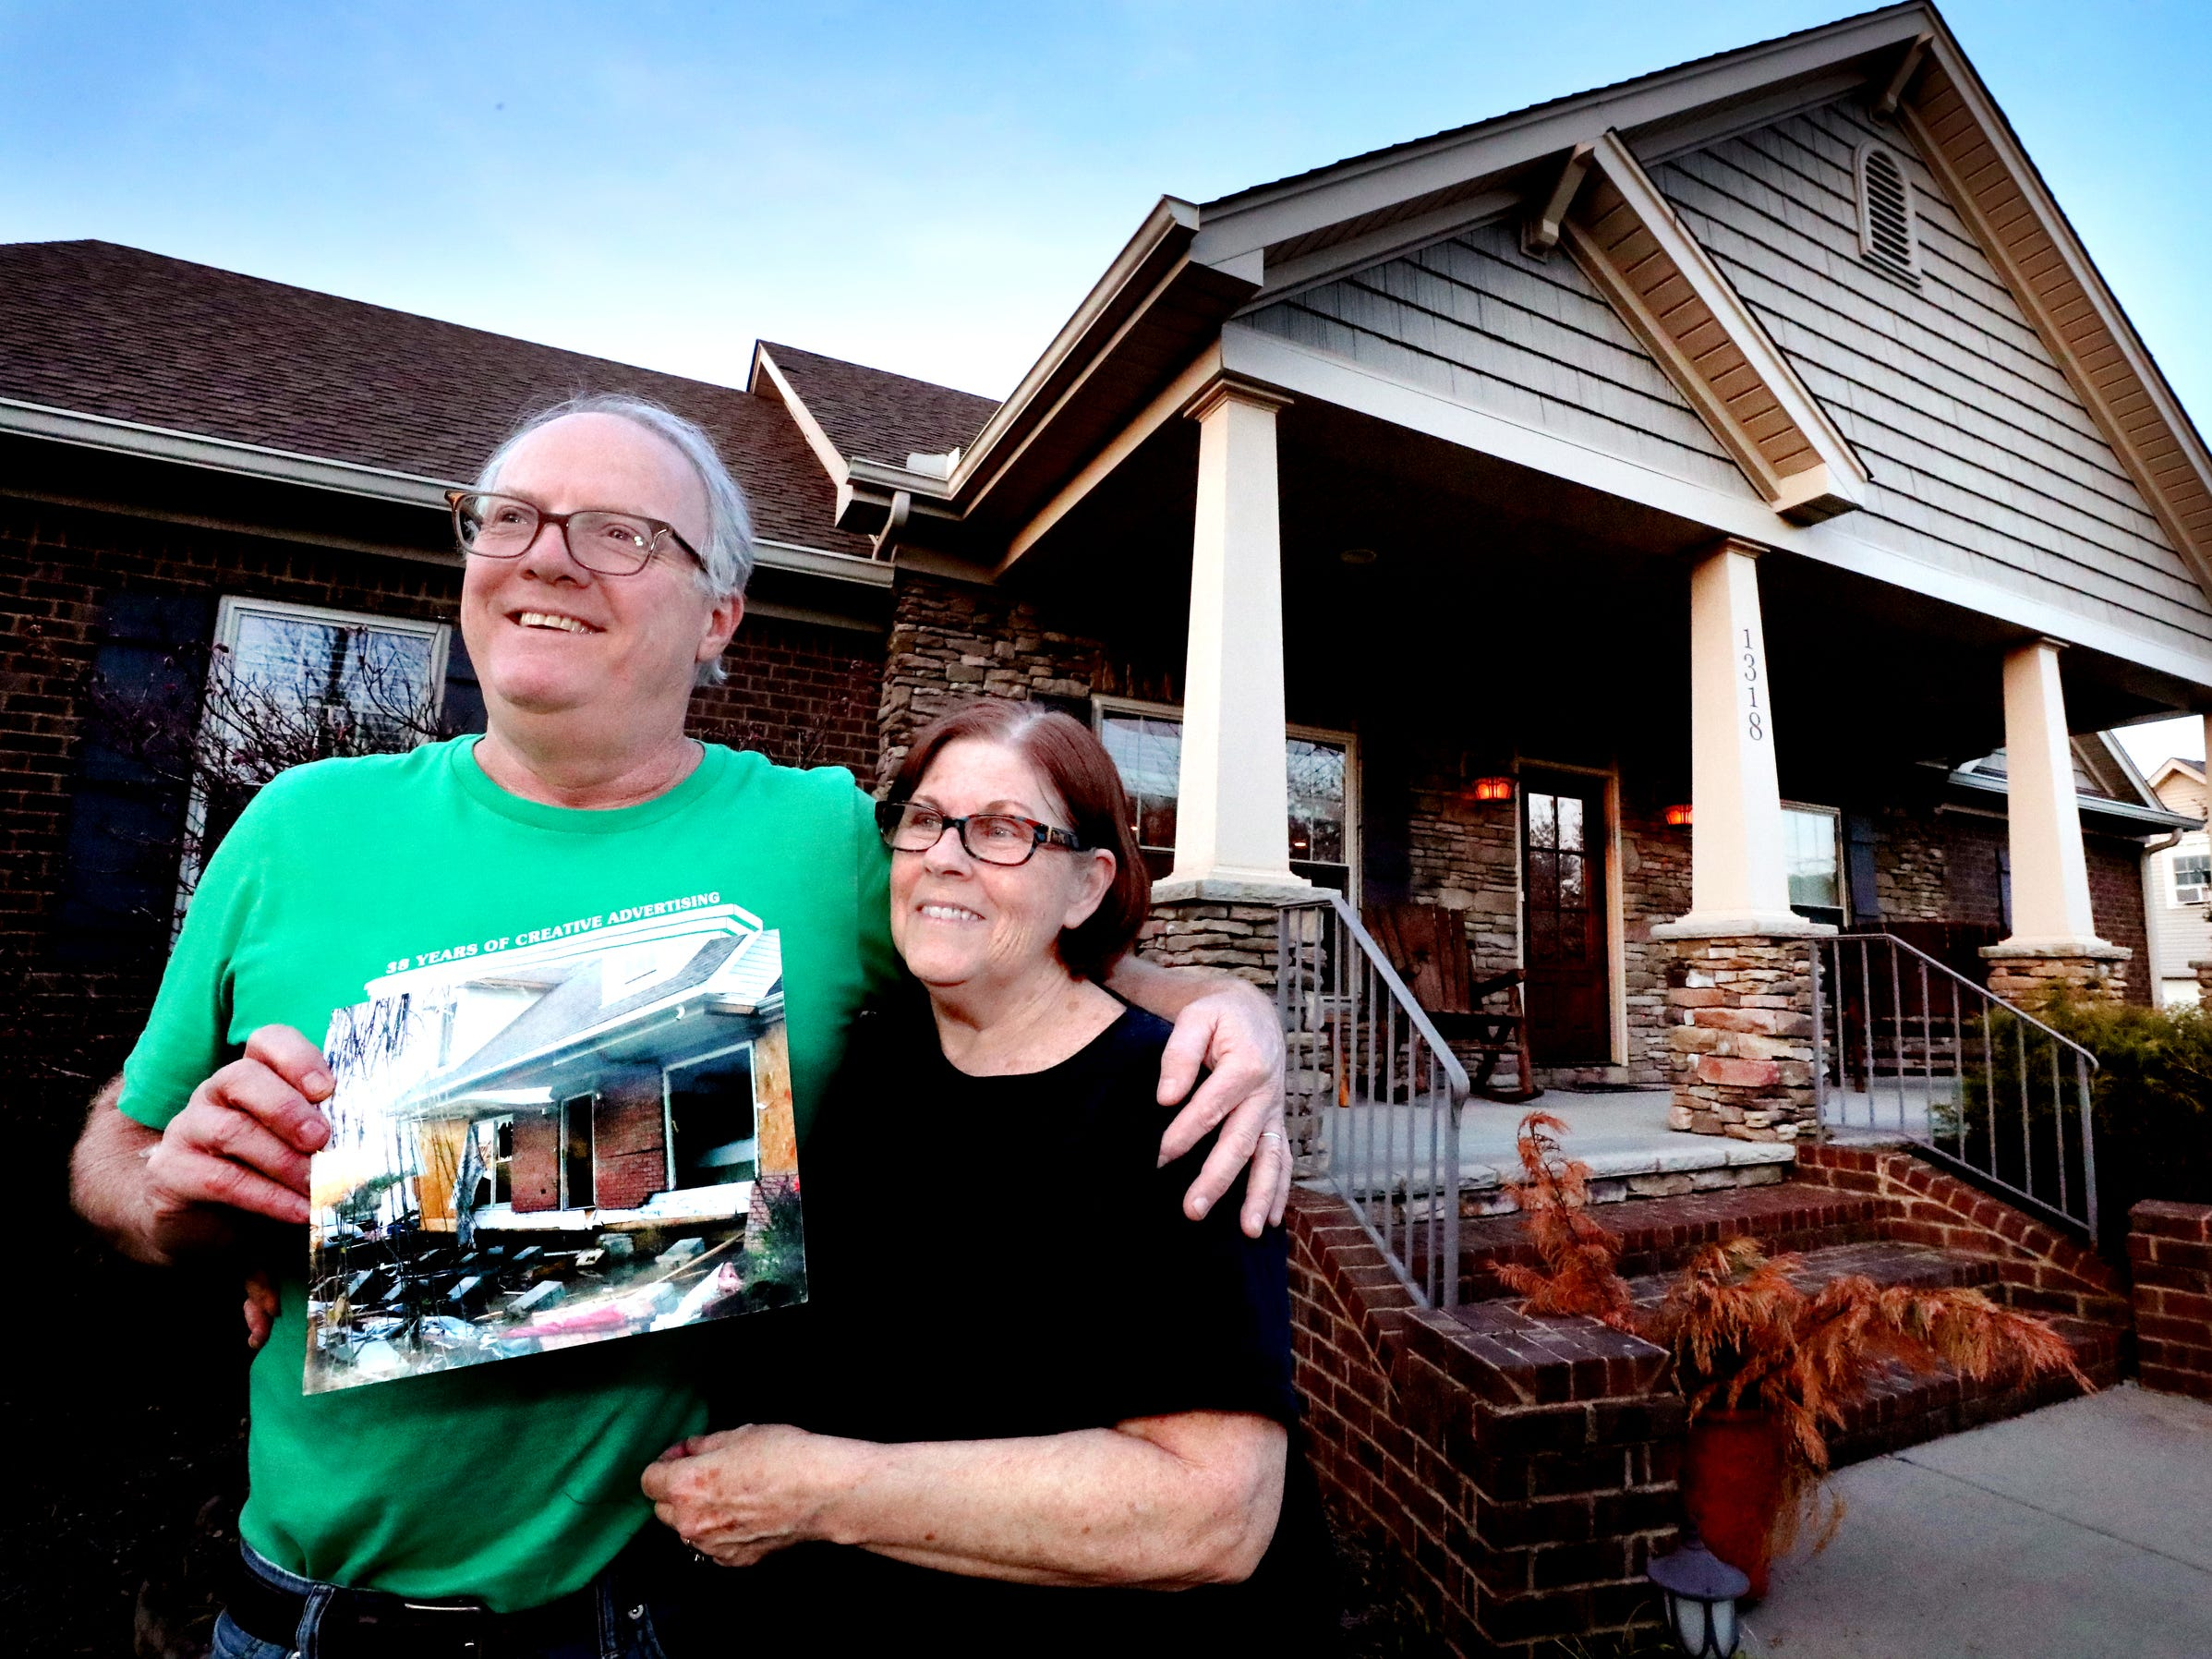 Mike and Teresa Bickford hold up a photo of their old home that was destroyed by the 2009 Good Friday tornado as they stand in front of their new home built on the old site, on Wednesday March 27, 2019.